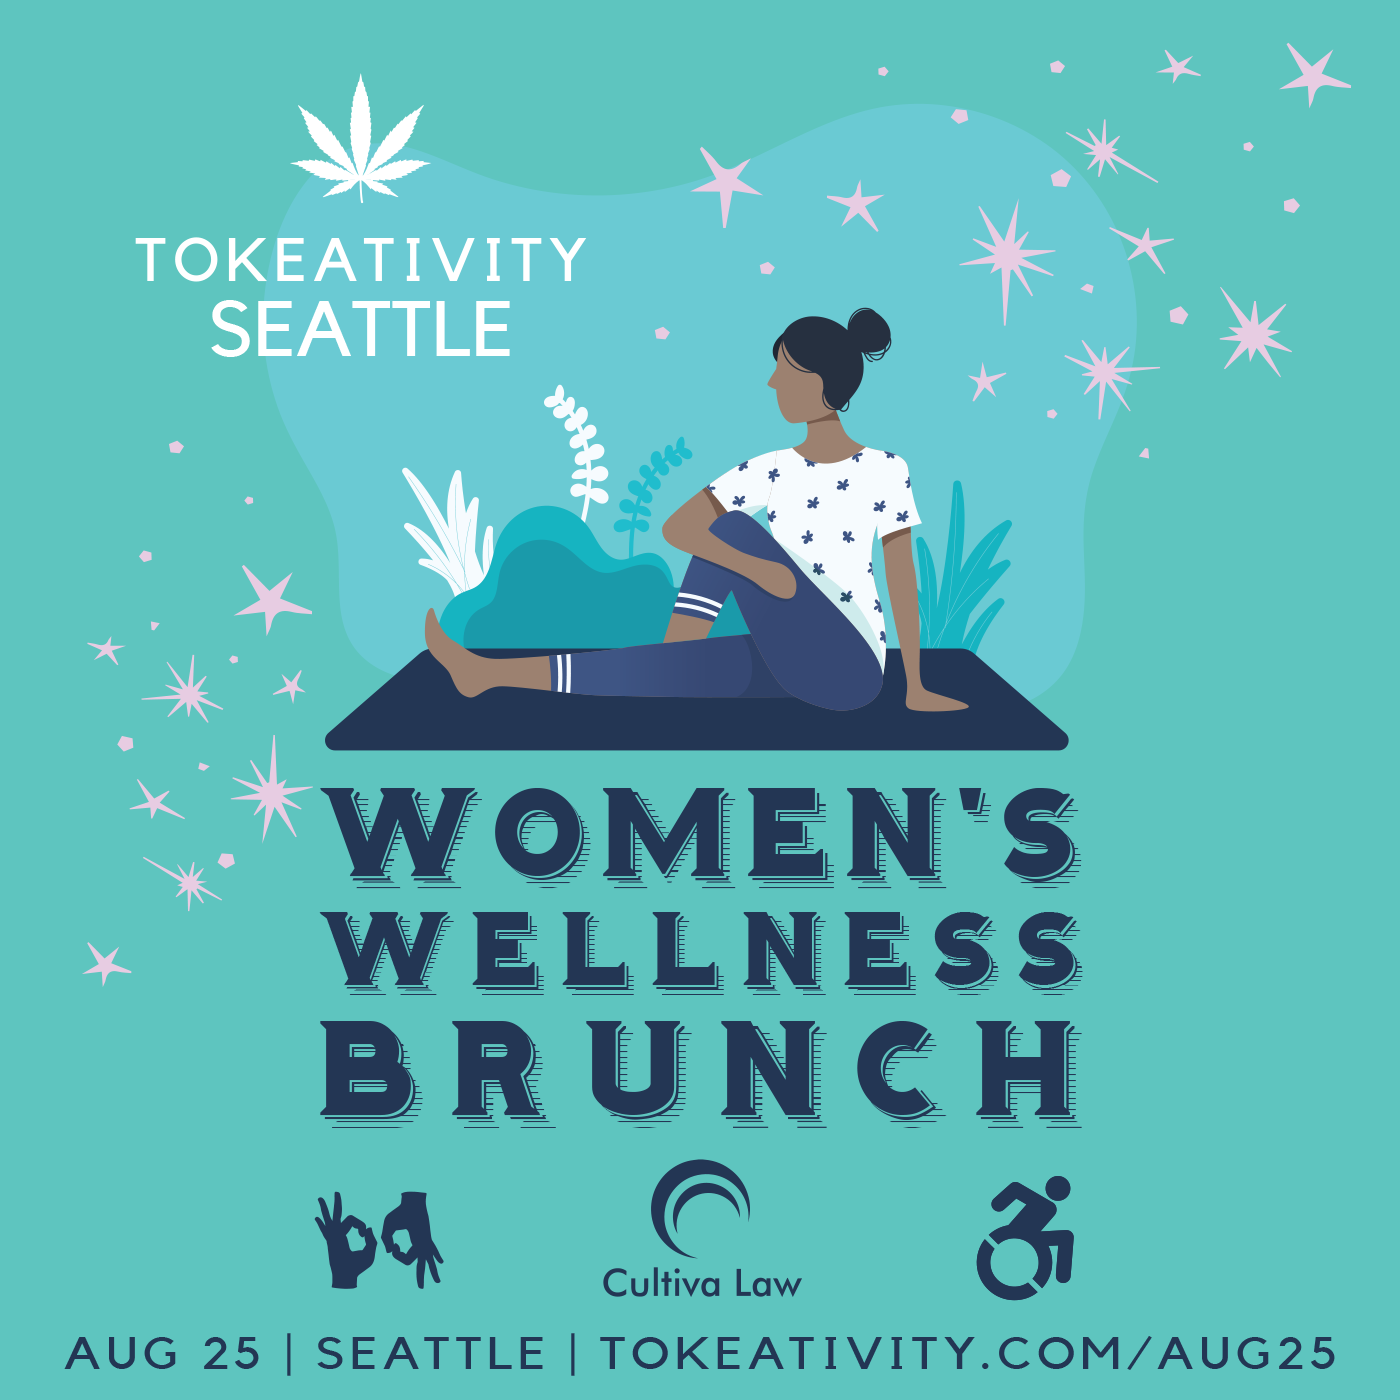 Tokeativity Seattle: Women's Wellness Brunch